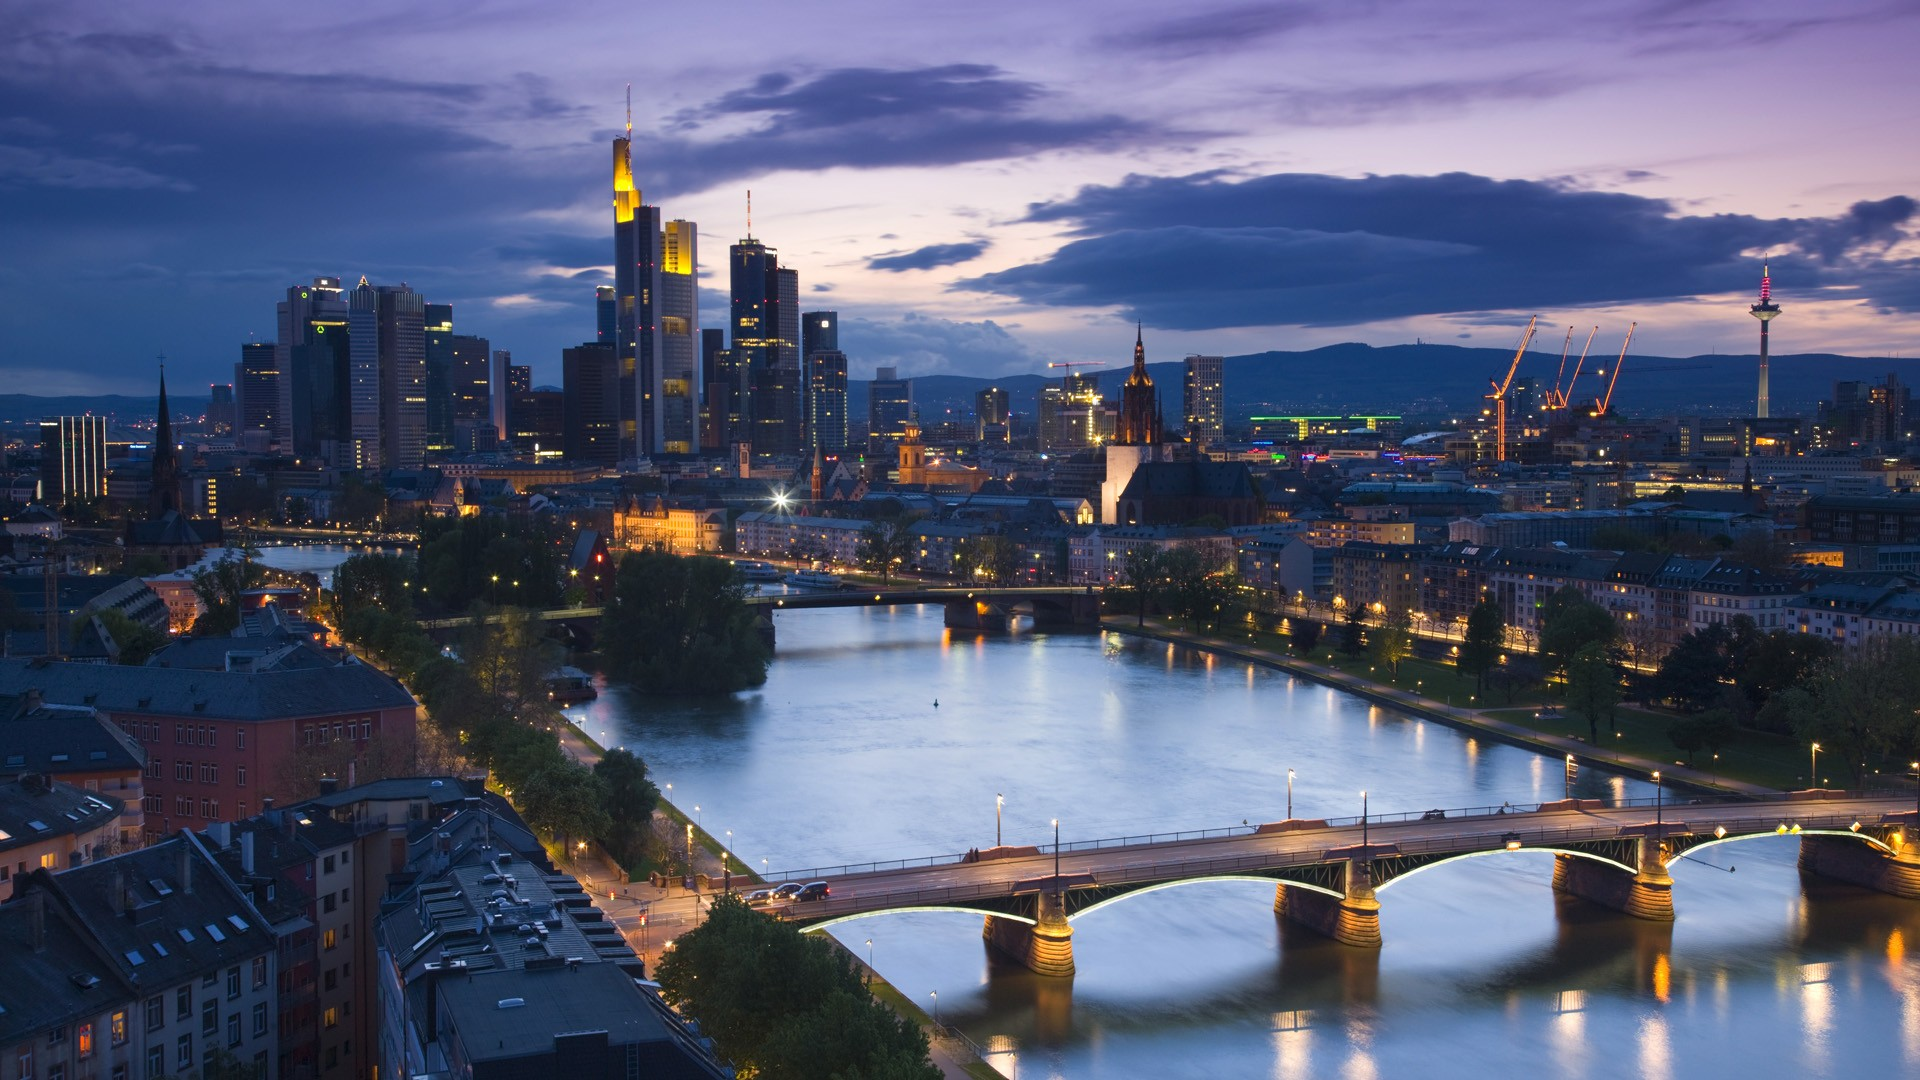 Frankfurt am Main Germany  city photos gallery : frankfurt am main is germany s second largest metropolitan region the ...